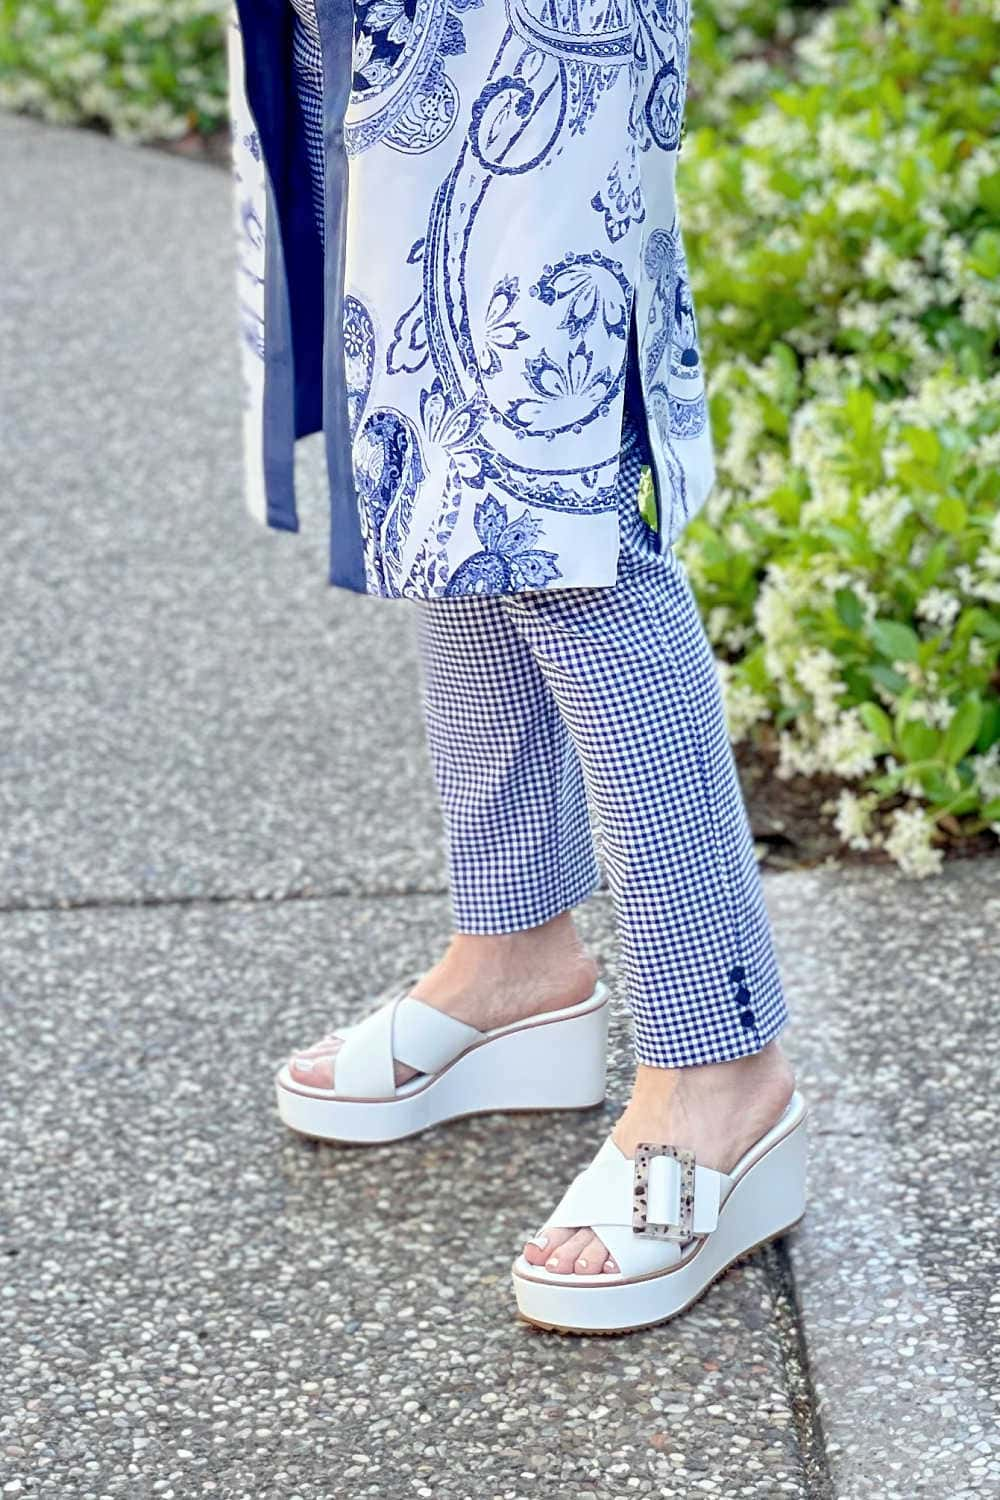 woman's legs showing blue and white jacket mixed with blue and white pants